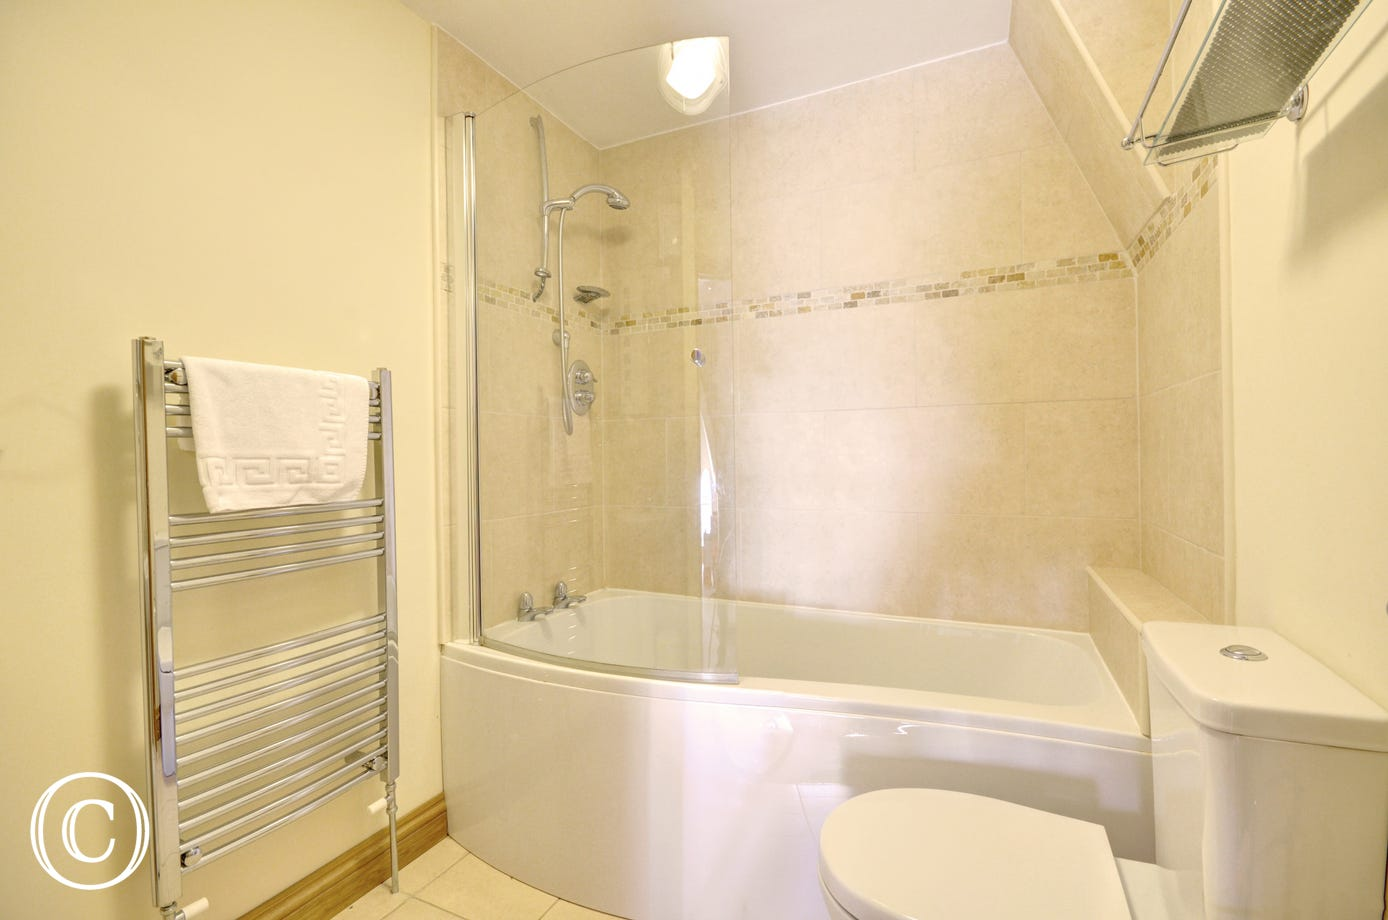 A modern bathroom suite with shower over bath.